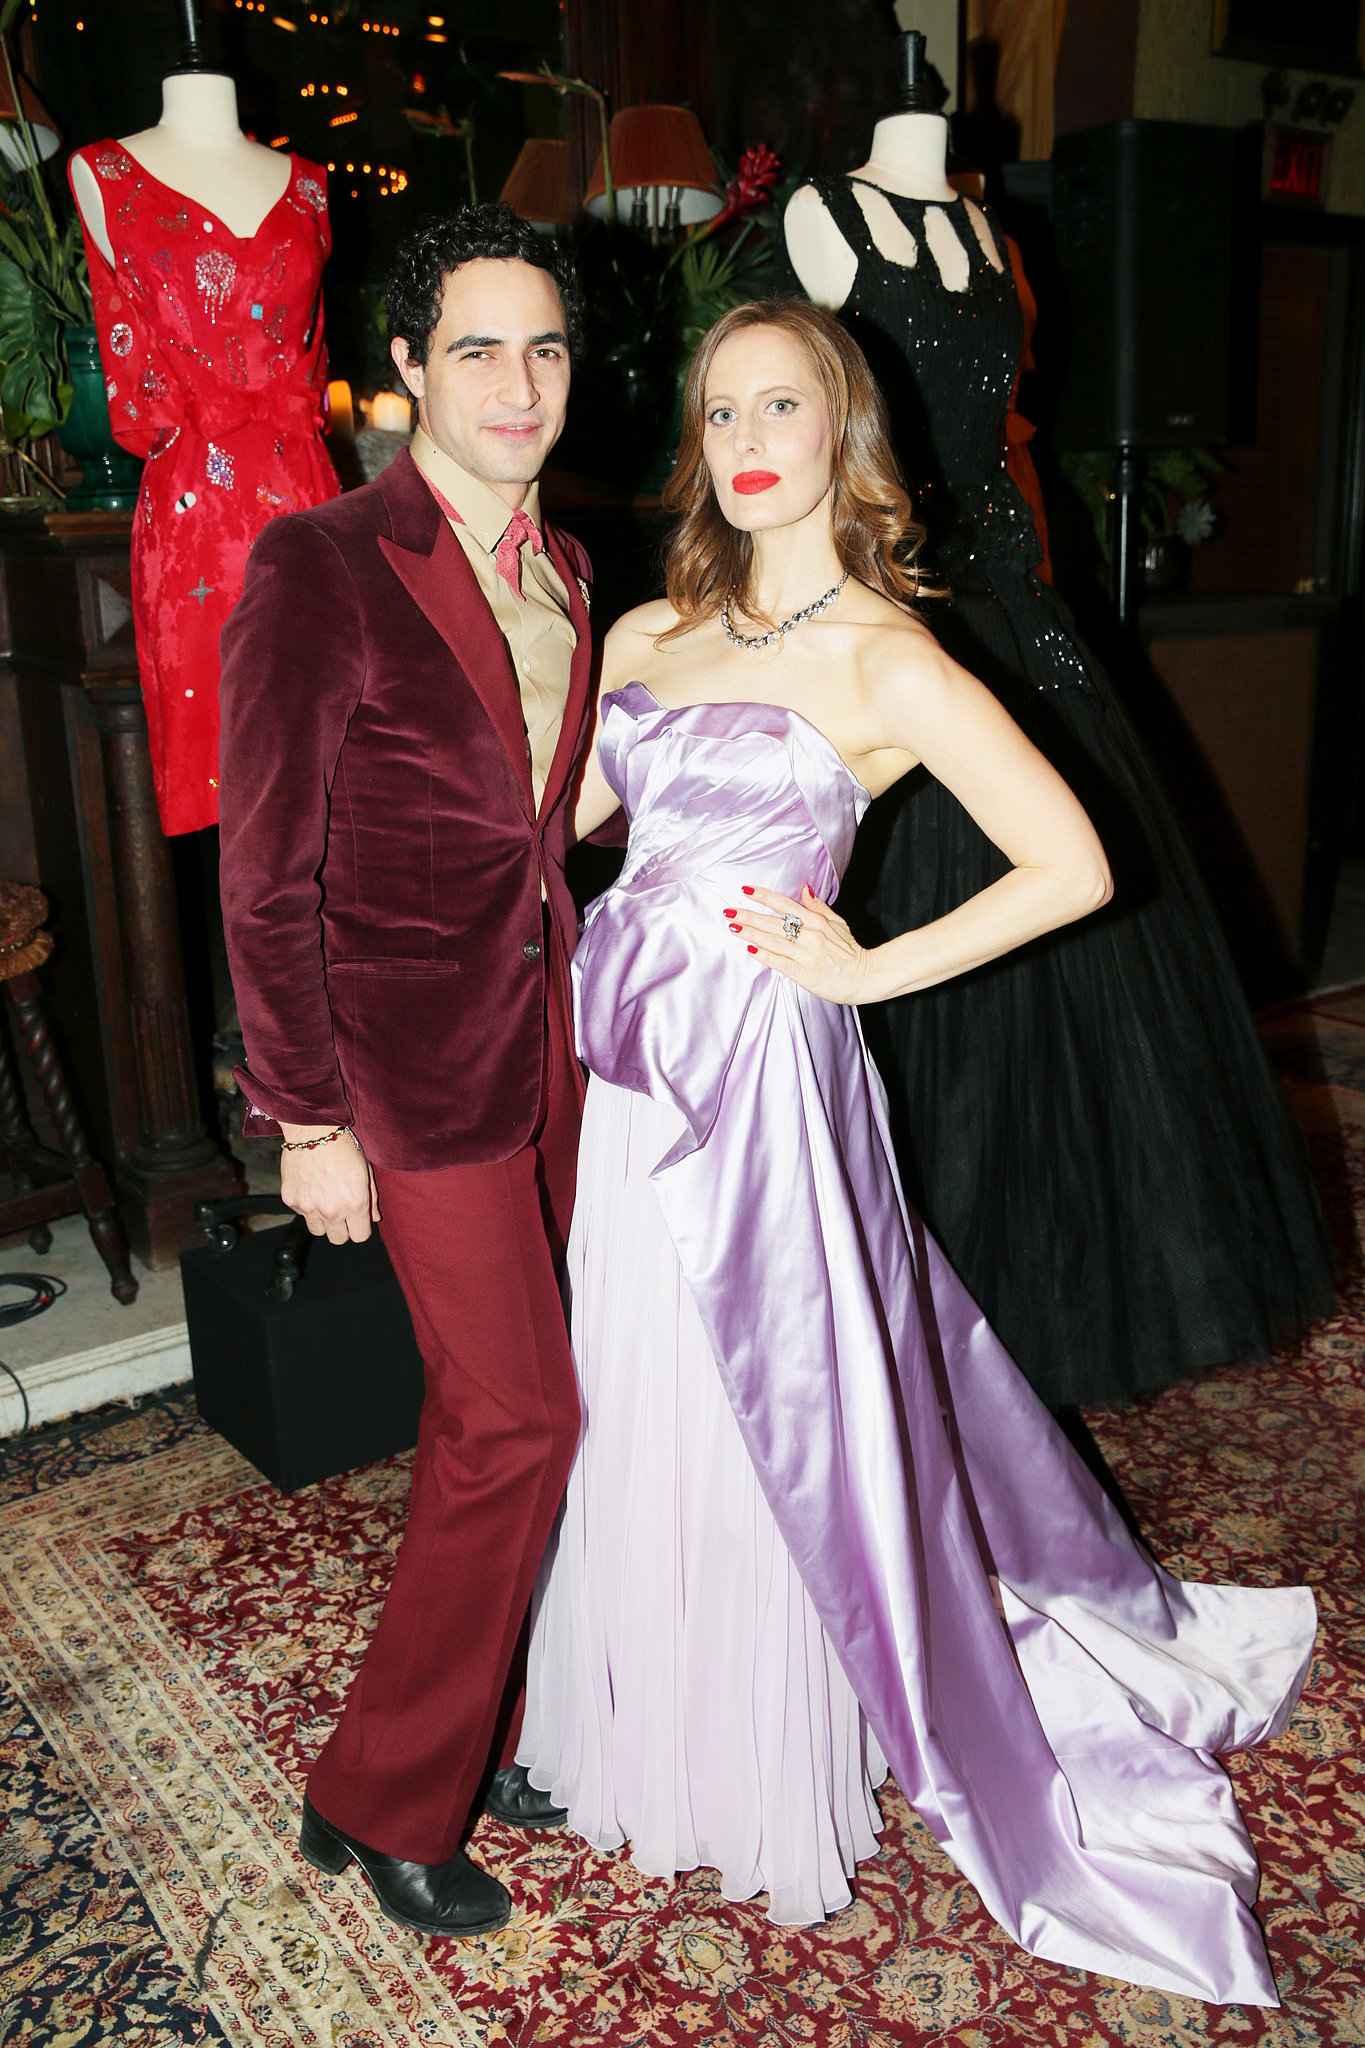 Zac Posen and Liz Goldwyn at the Vintage Vanguard benefit.